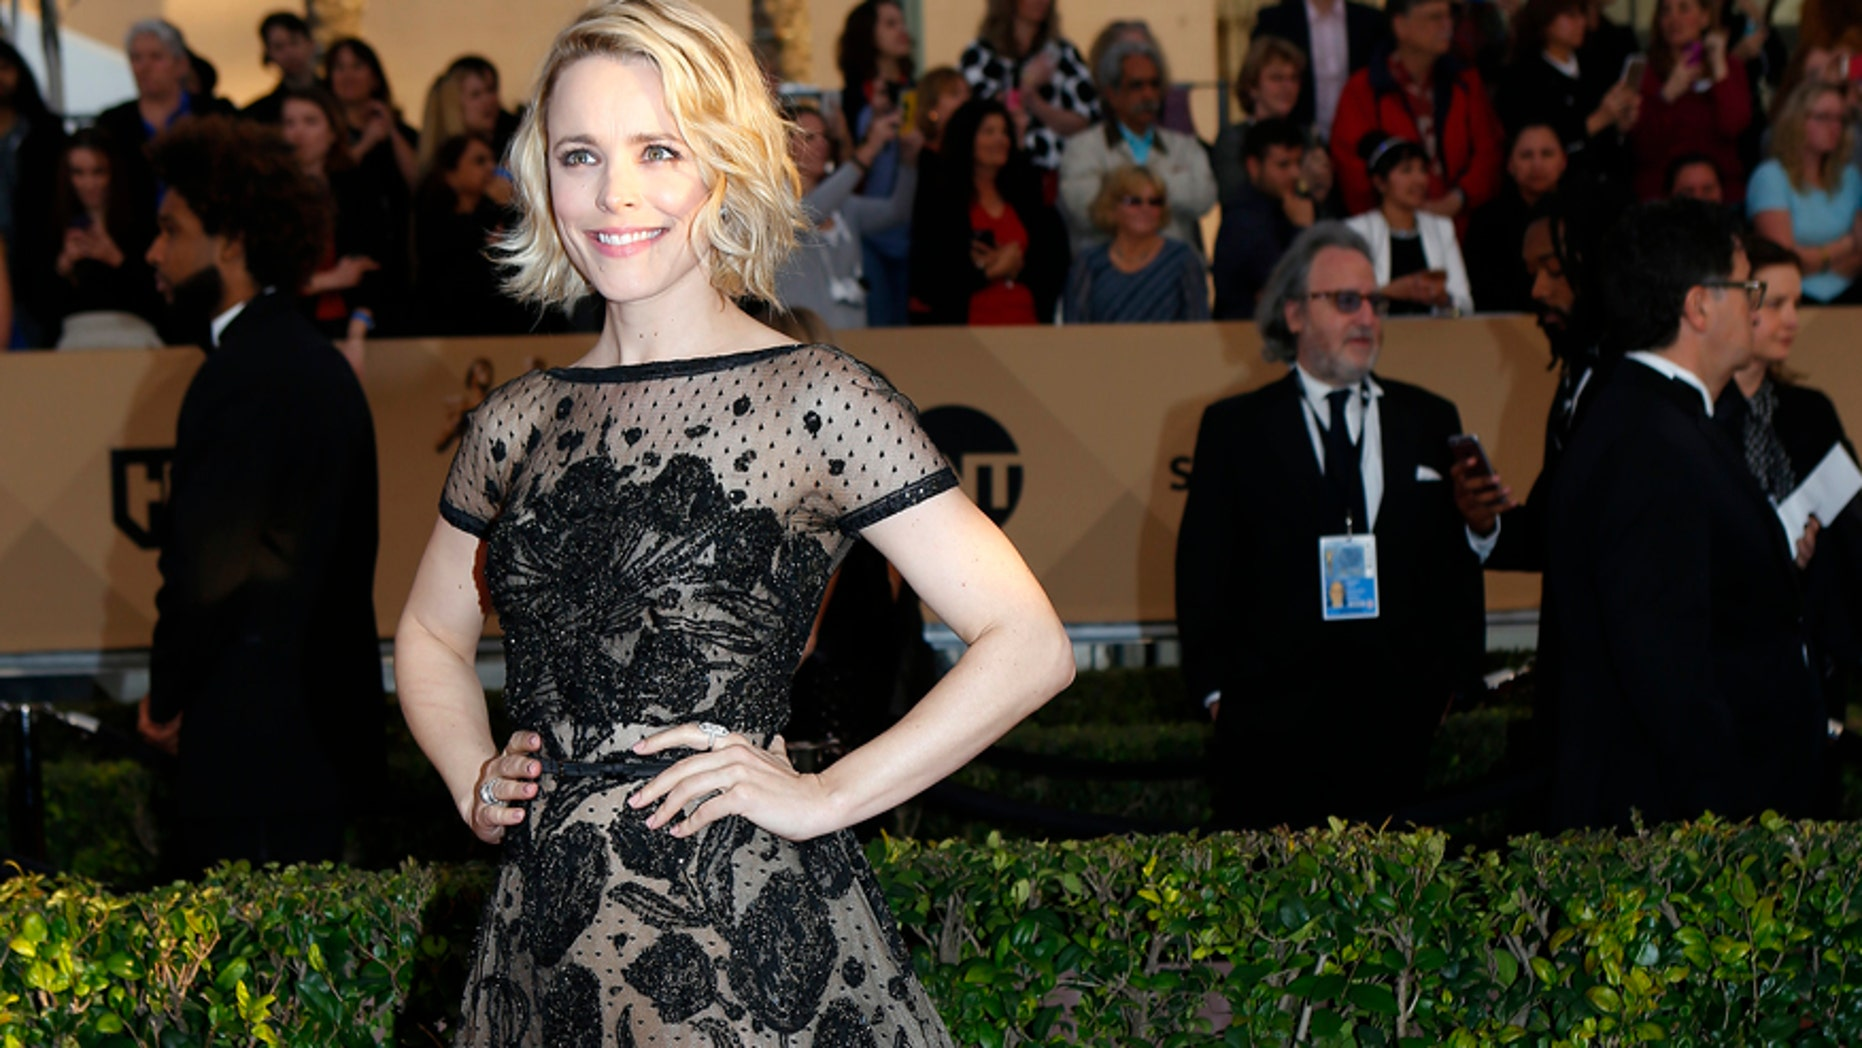 Actress Rachel McAdams arrives at the 22nd Screen Actors Guild Awards in Los Angeles, California January 30, 2016.  REUTERS/Mike Blake - RTX24QPN